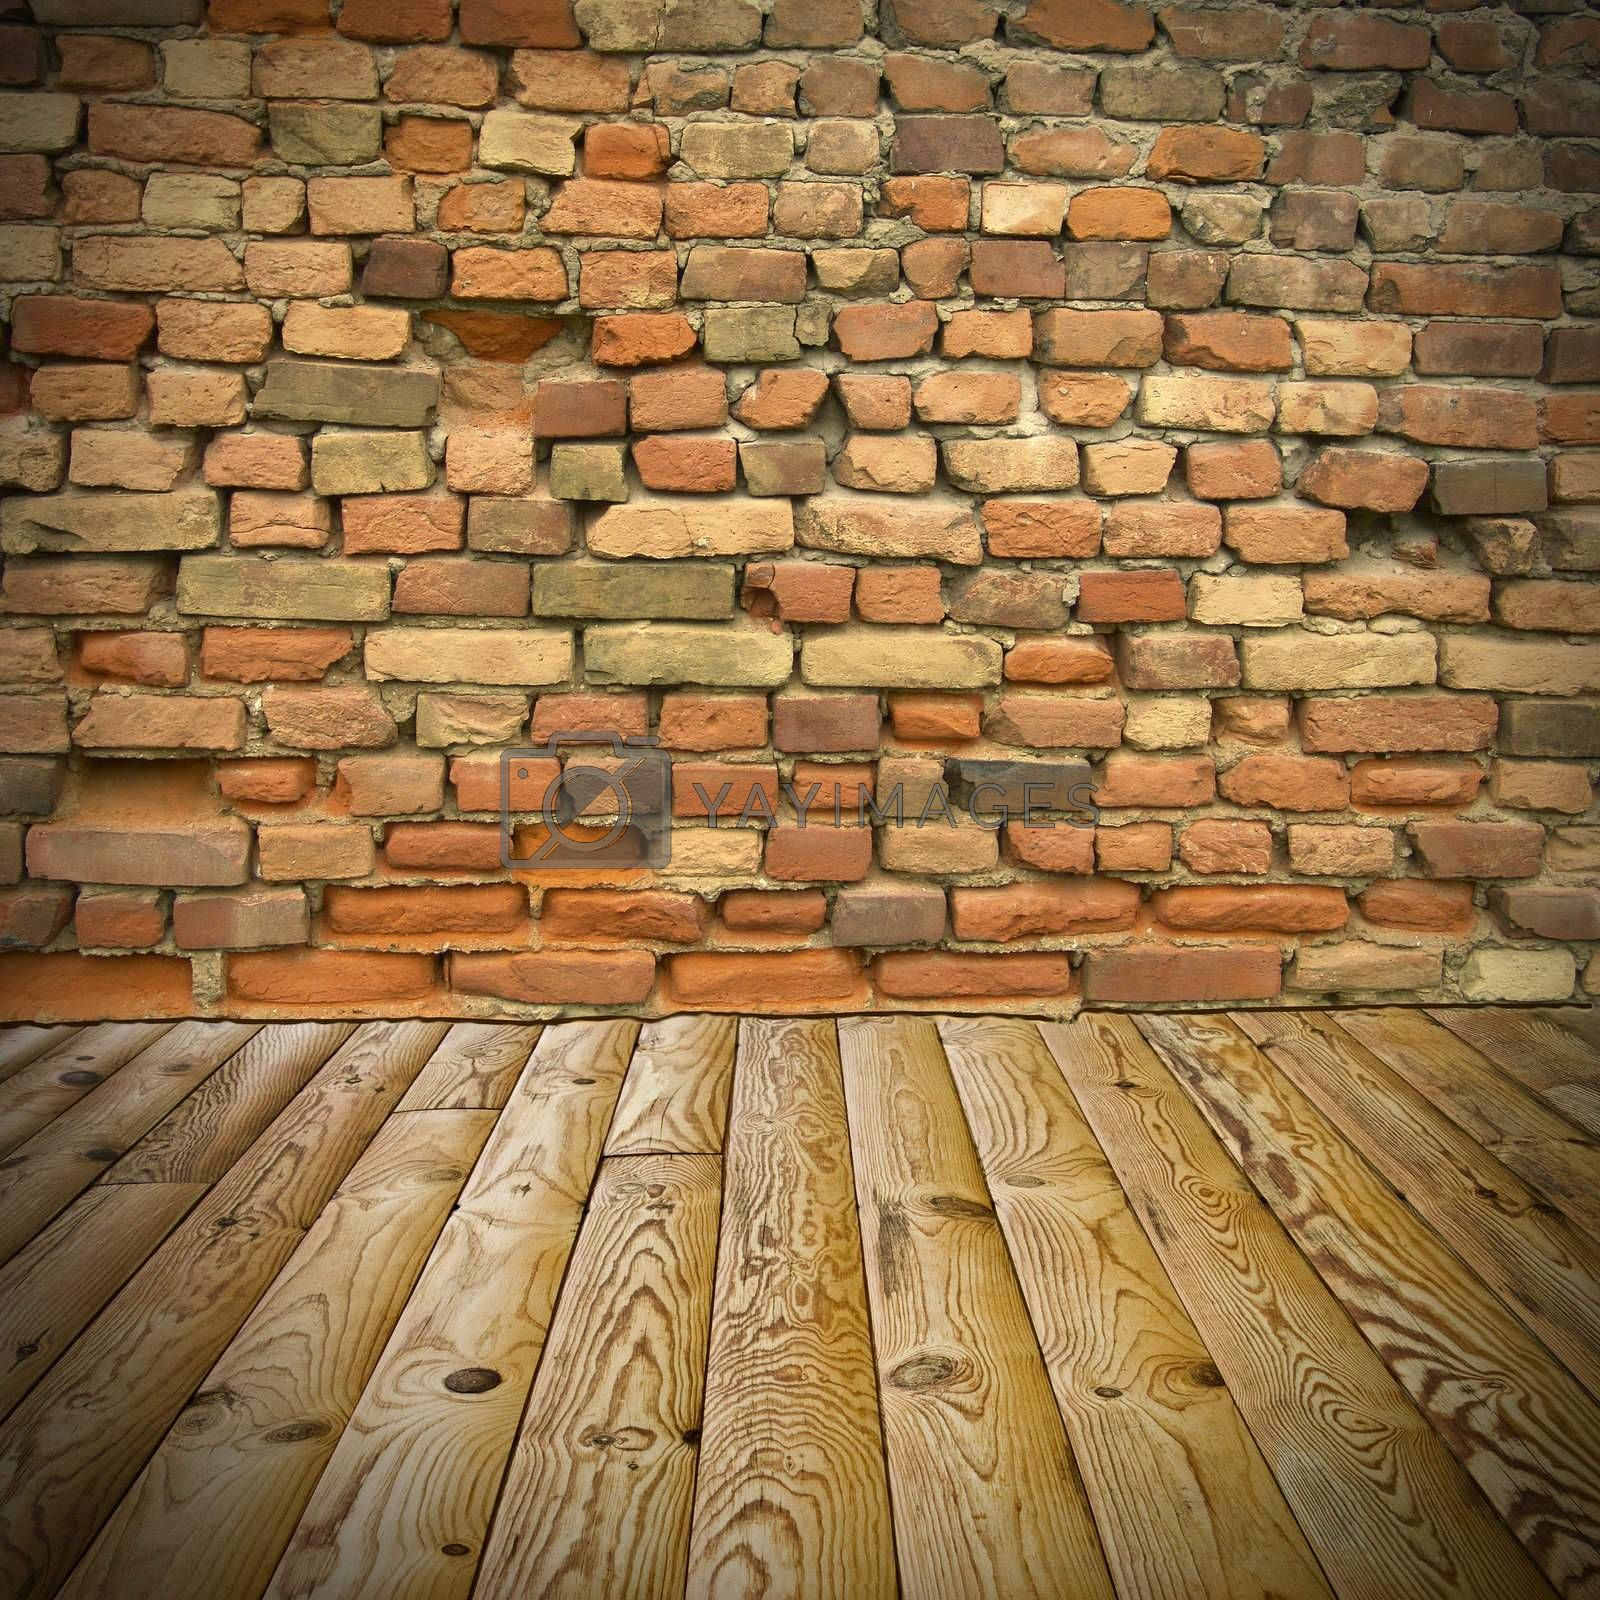 The abstract background, pine floor and brick wall